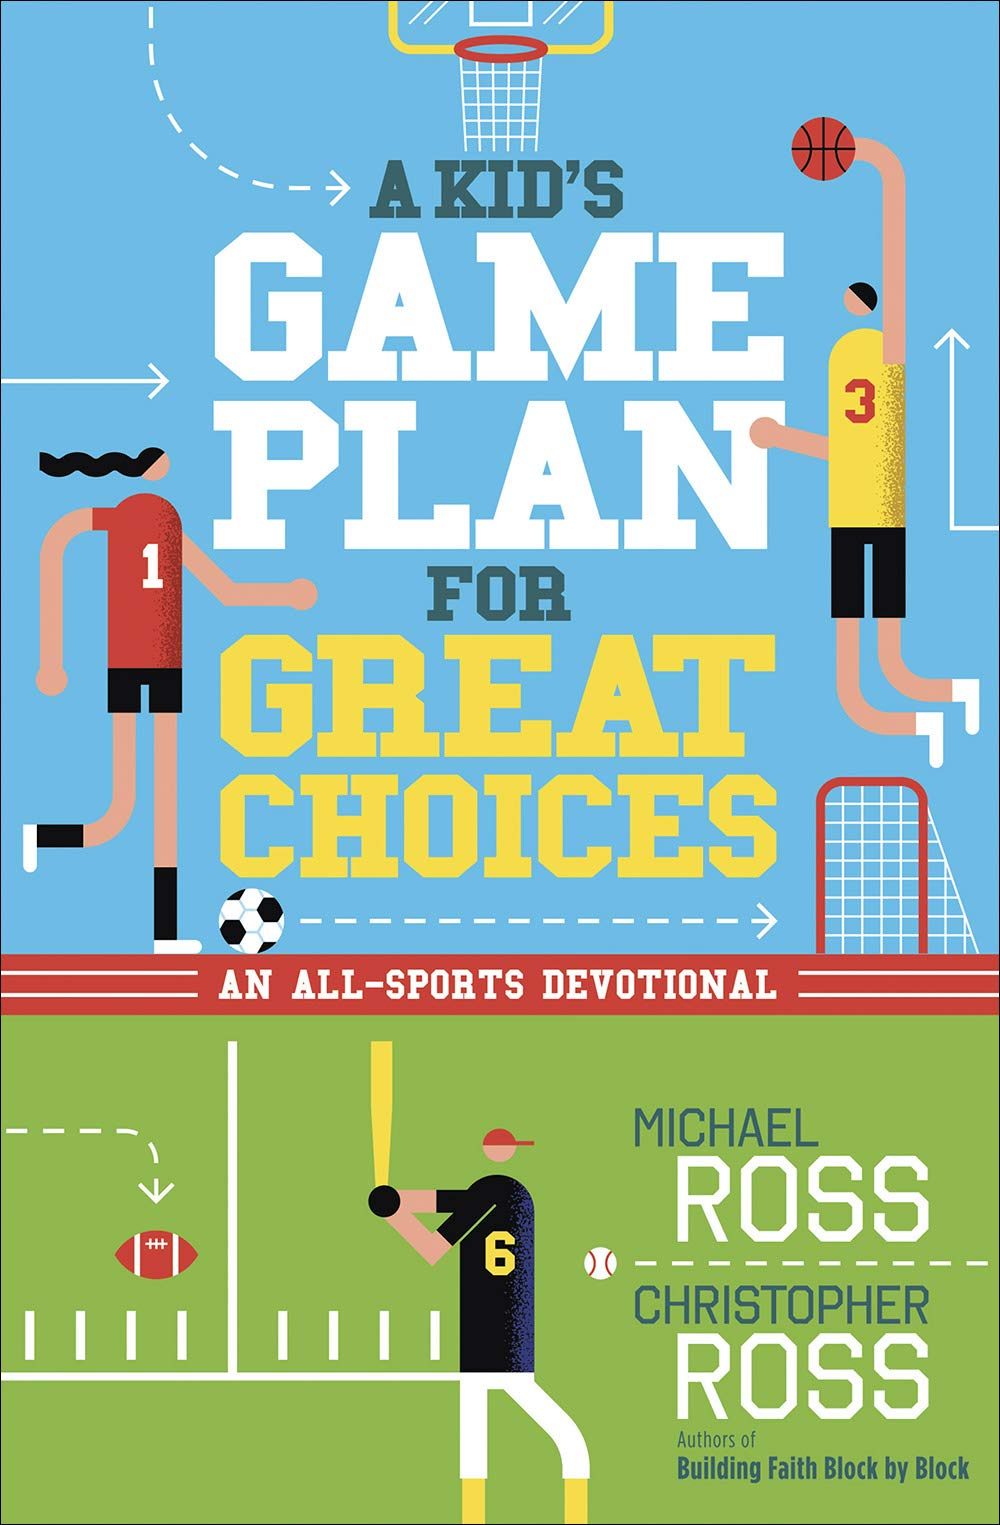 A Kid's Game Plan for Great Choices: An All-Sports Devotional: Michael  Ross, Christopher Ross: 9780736975247: Amazon.com: Books